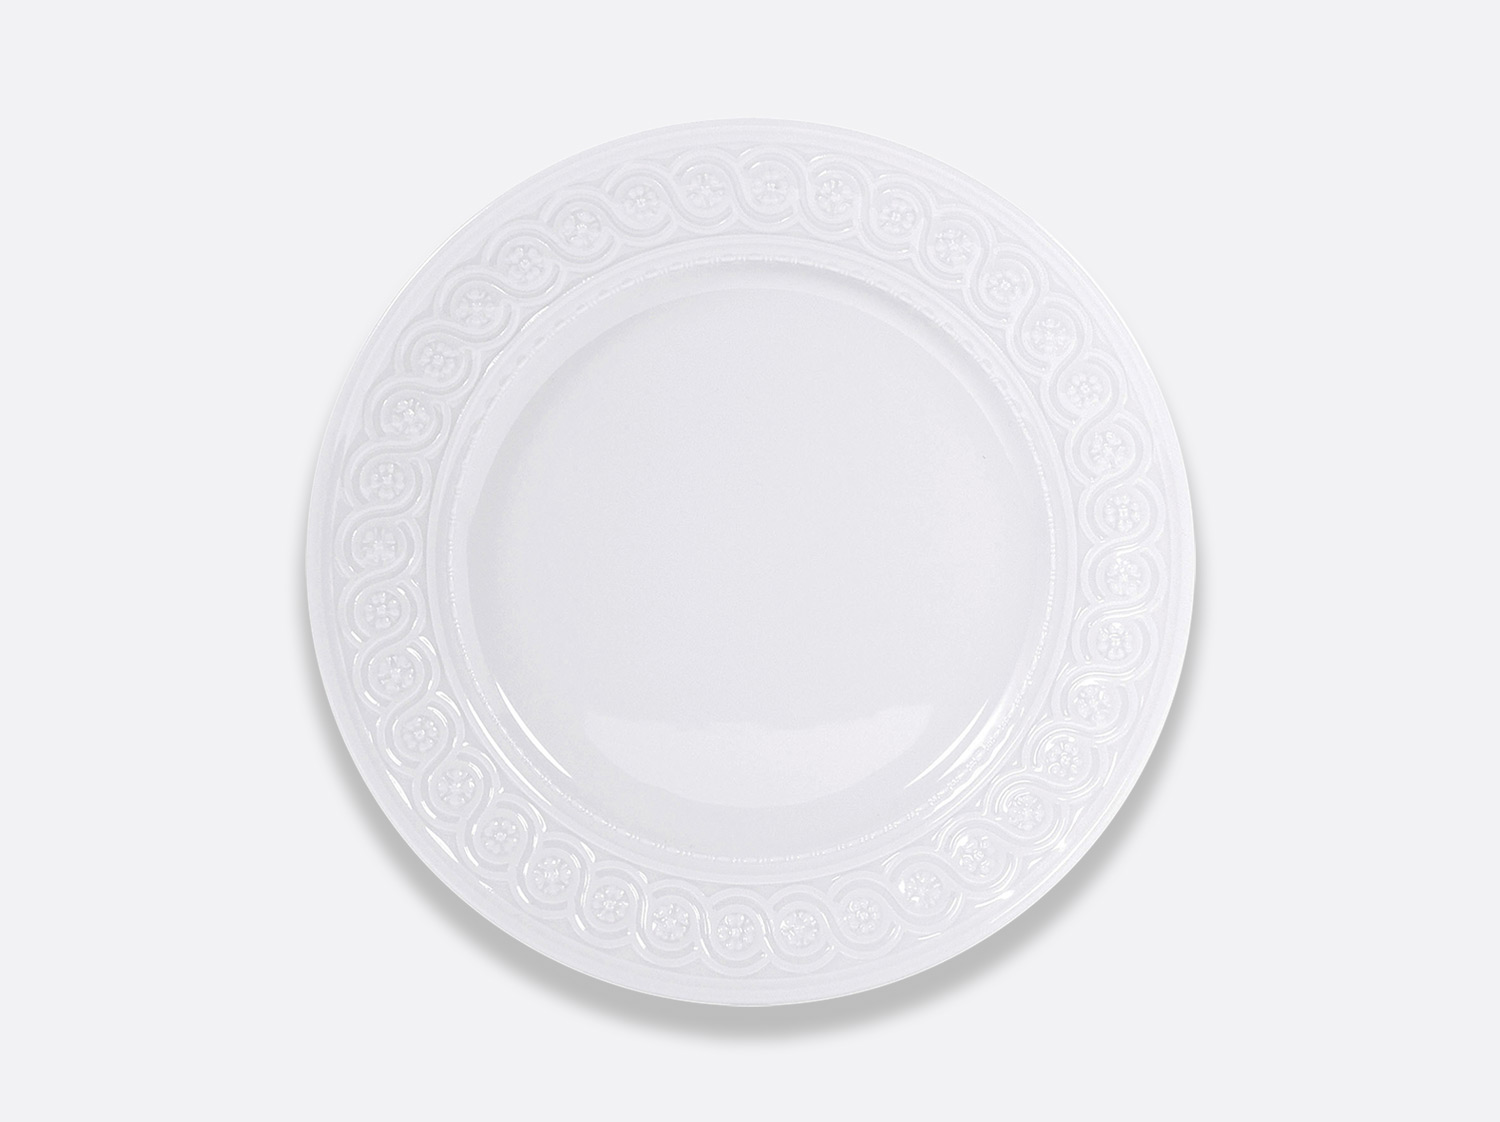 China Dinner plate 26 cm of the collection Louvre | Bernardaud